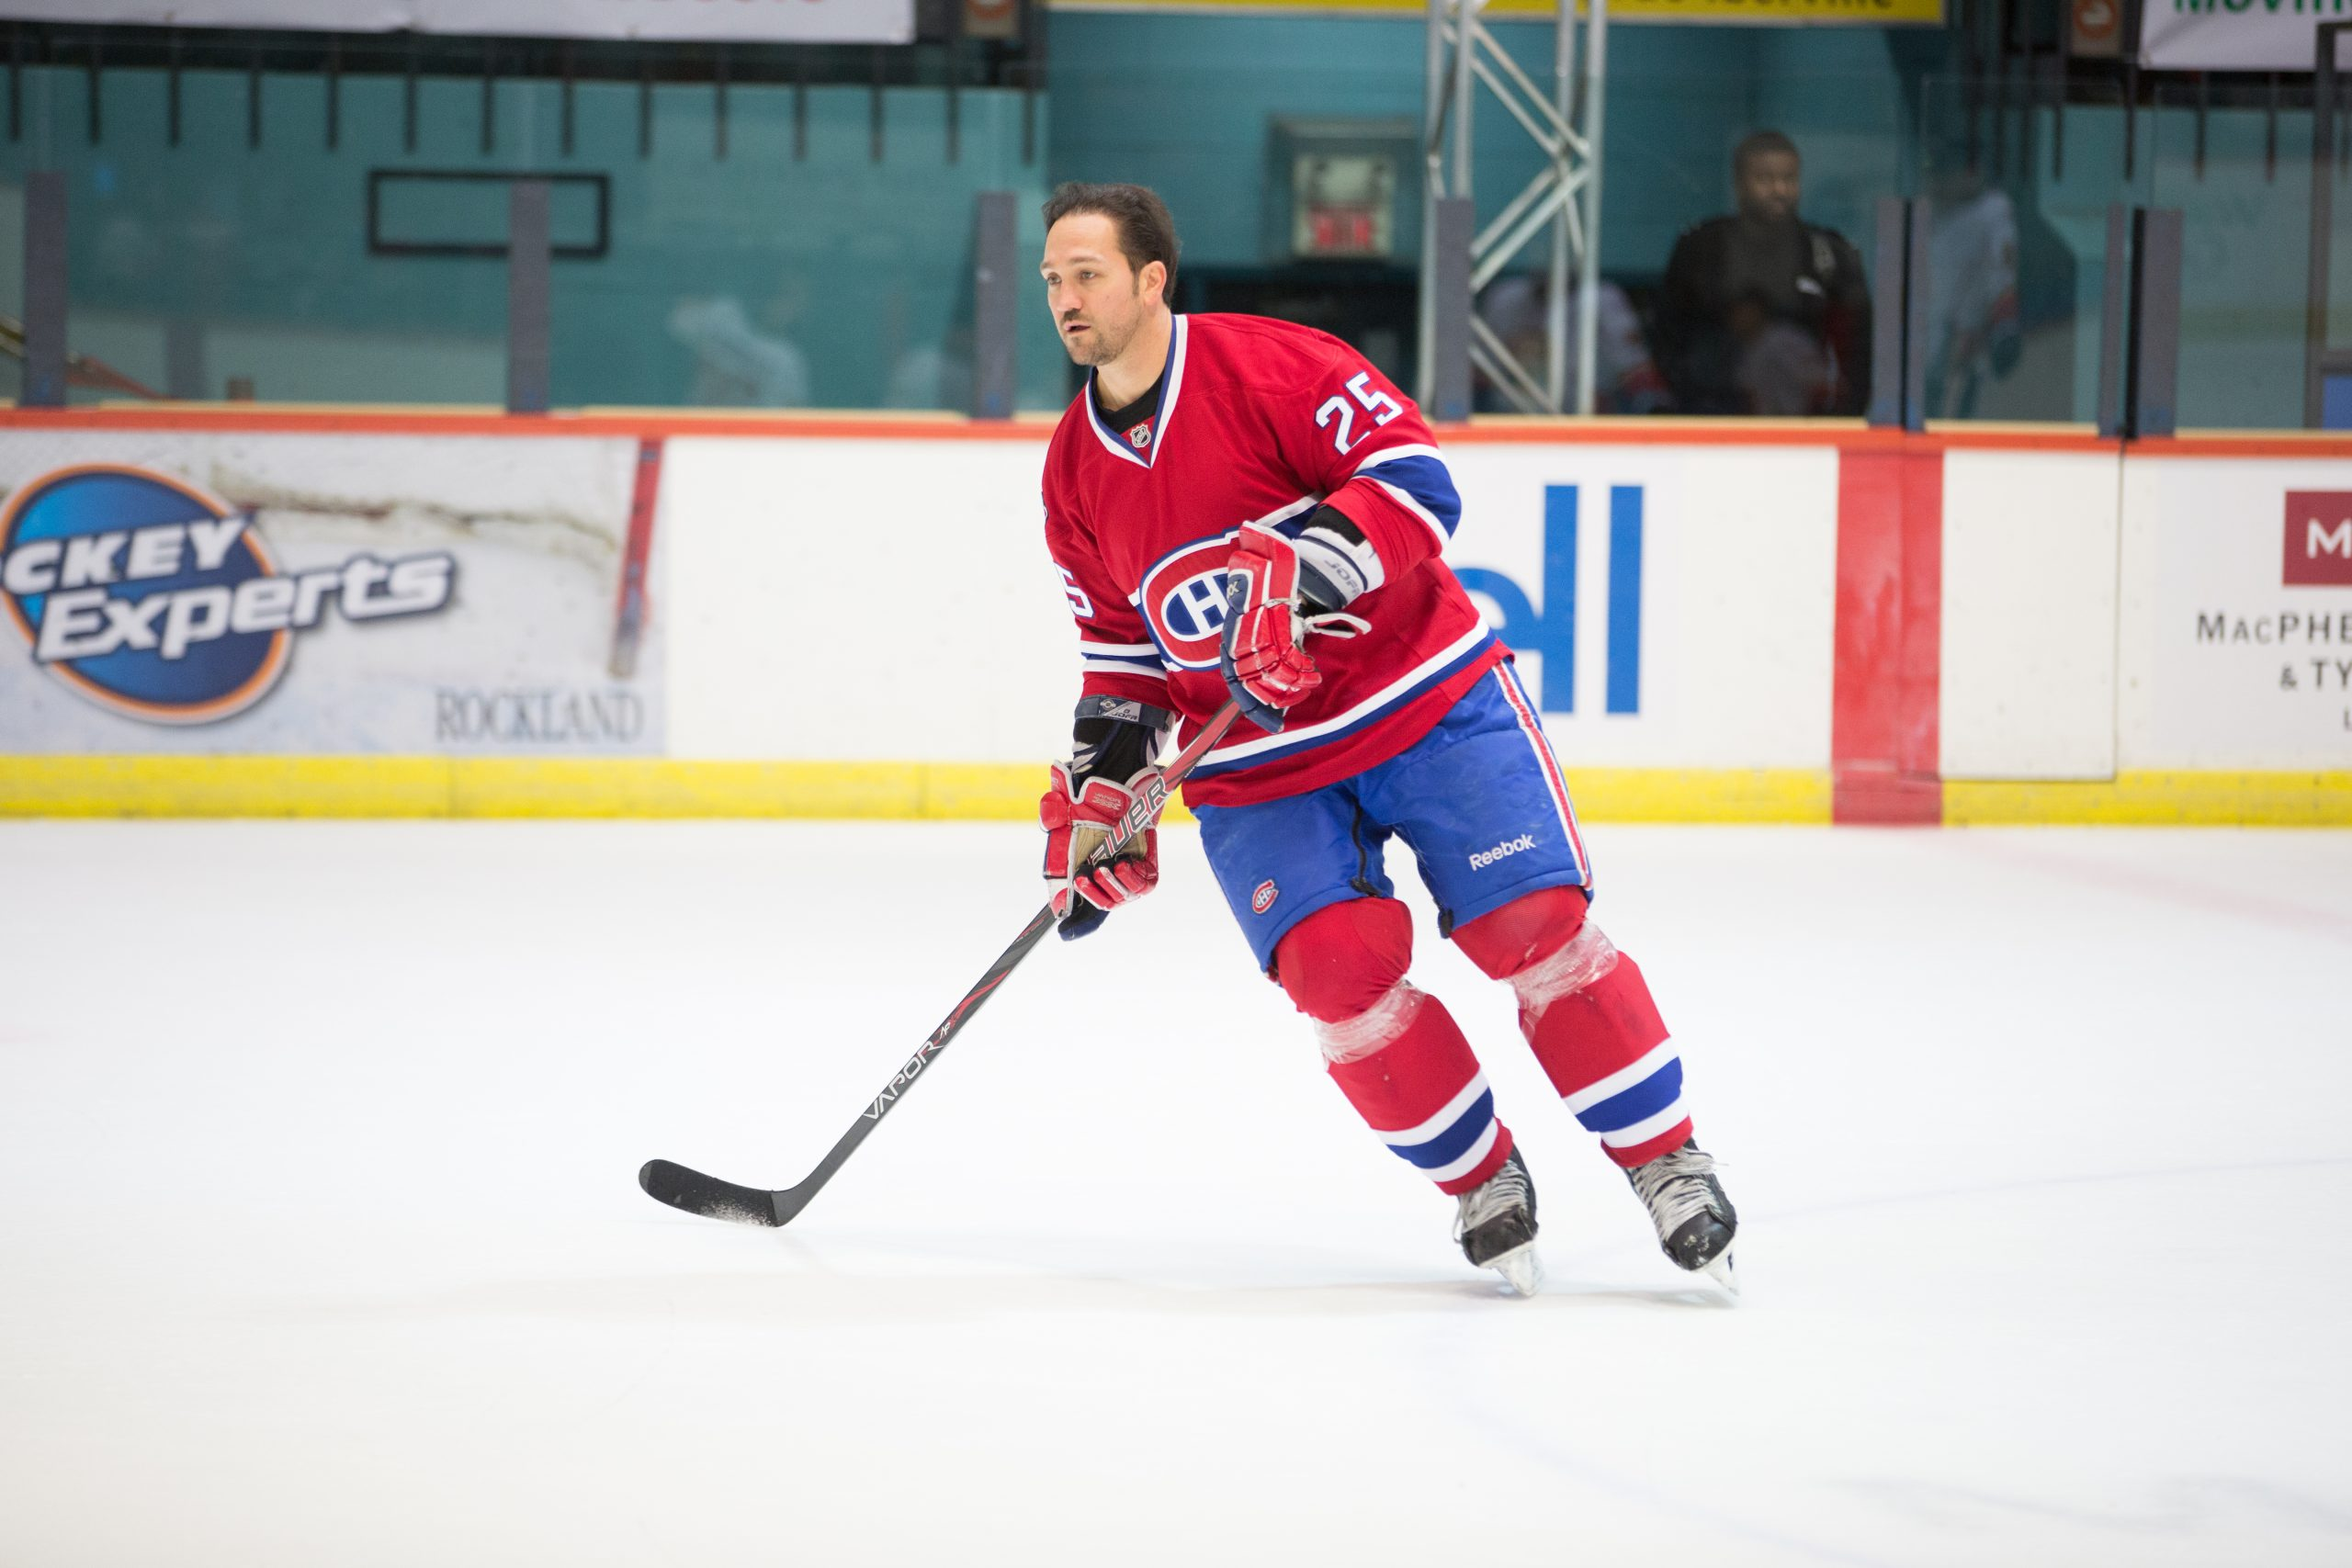 Dandenault primed for Habs/Leafs alumni battle in Belleville